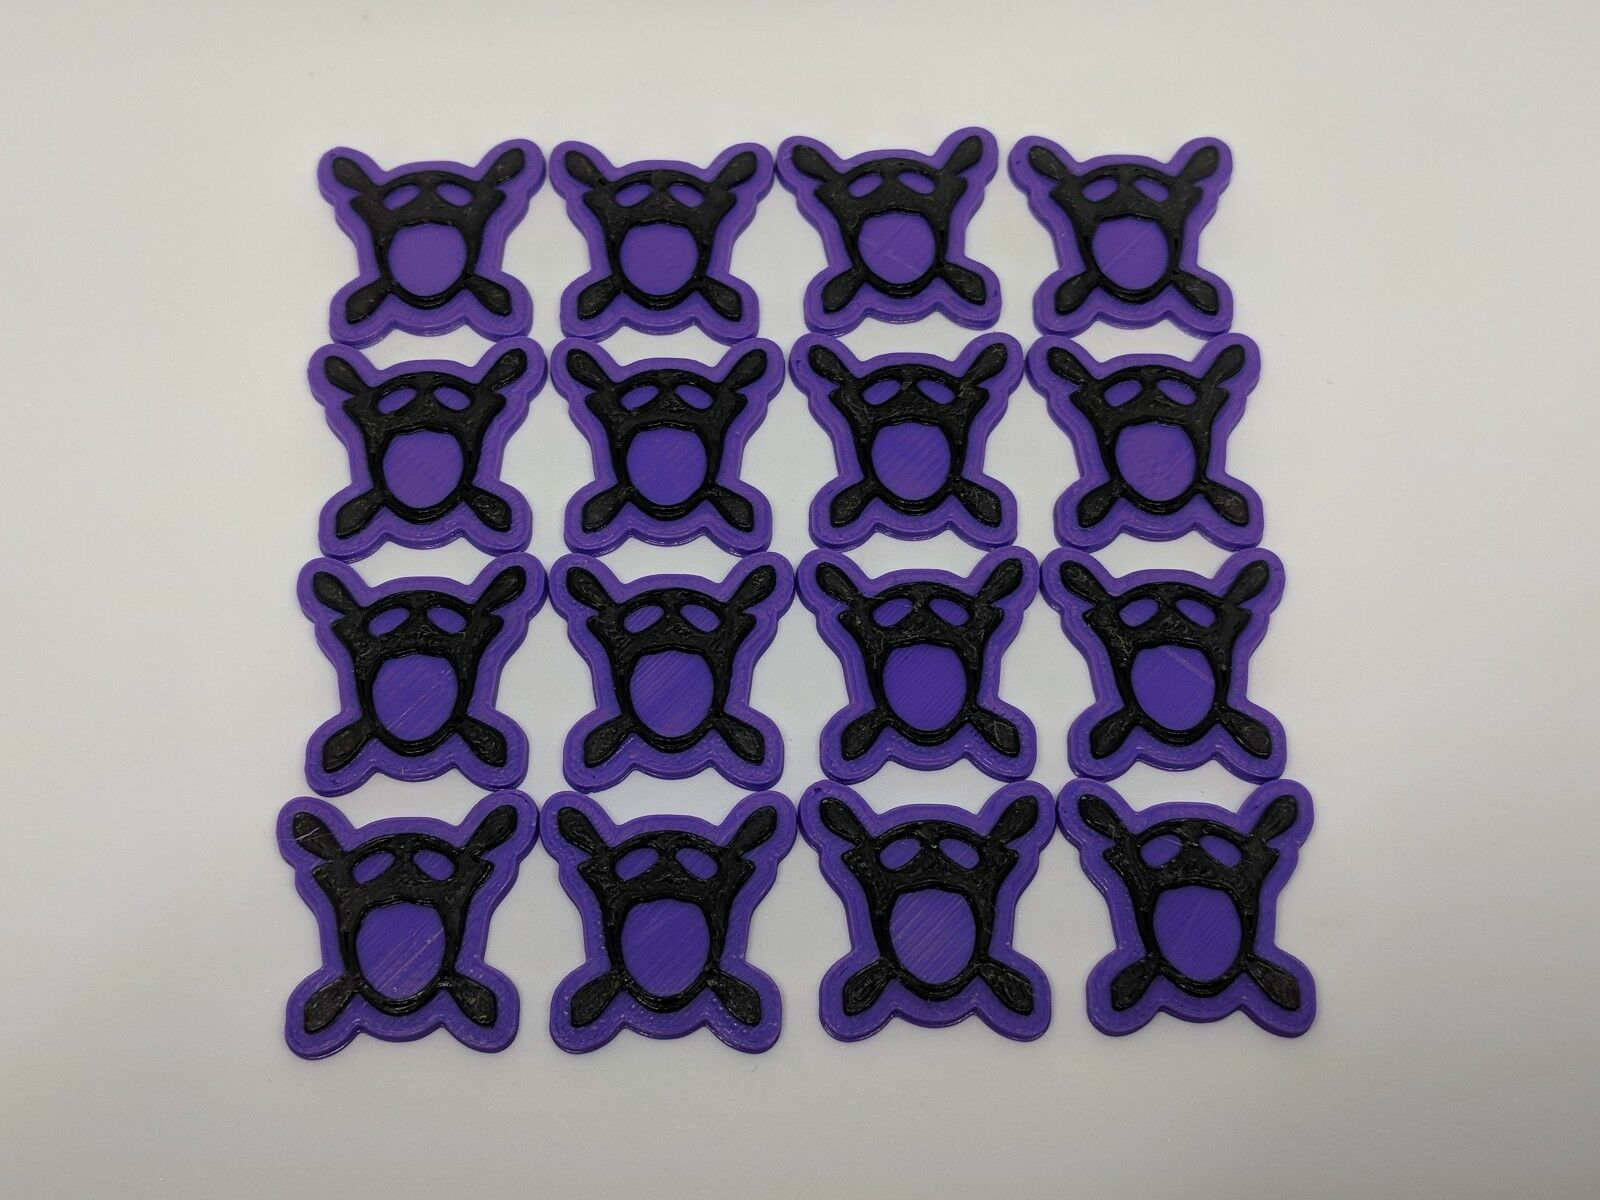 Spirit Island Tokens 4 and 6 player sets available